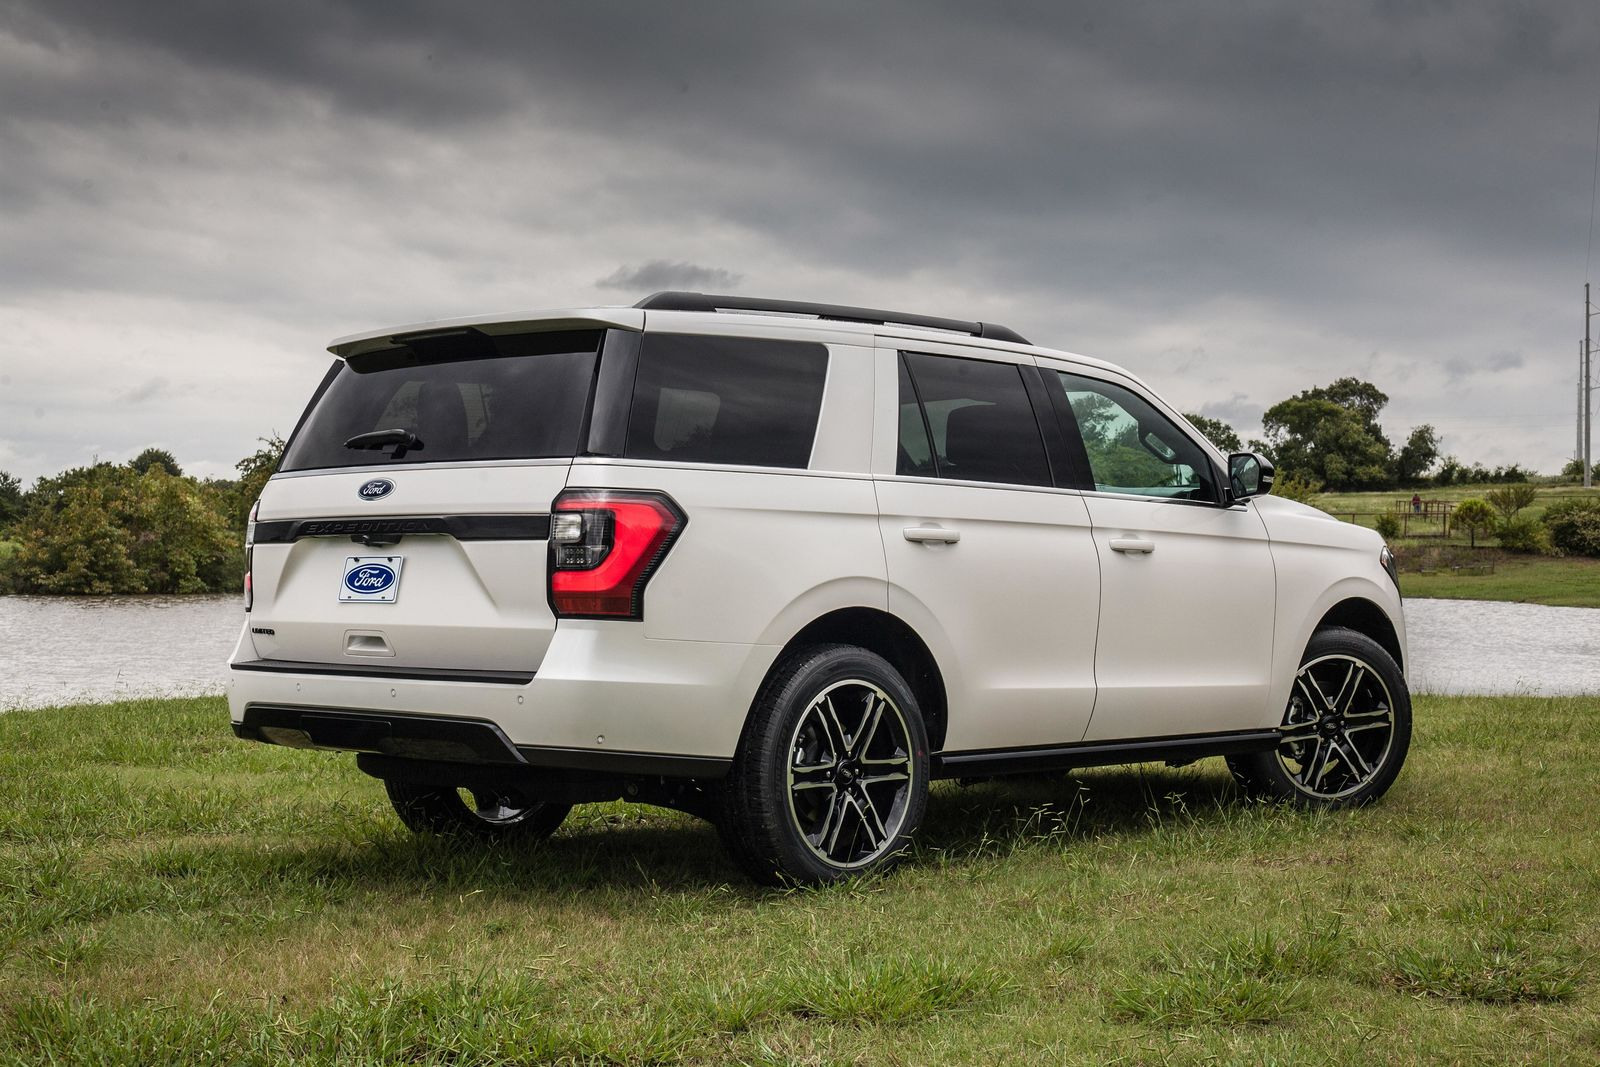 2019 Ford Expedition Stealth Edition{ } (Photo: Ford)